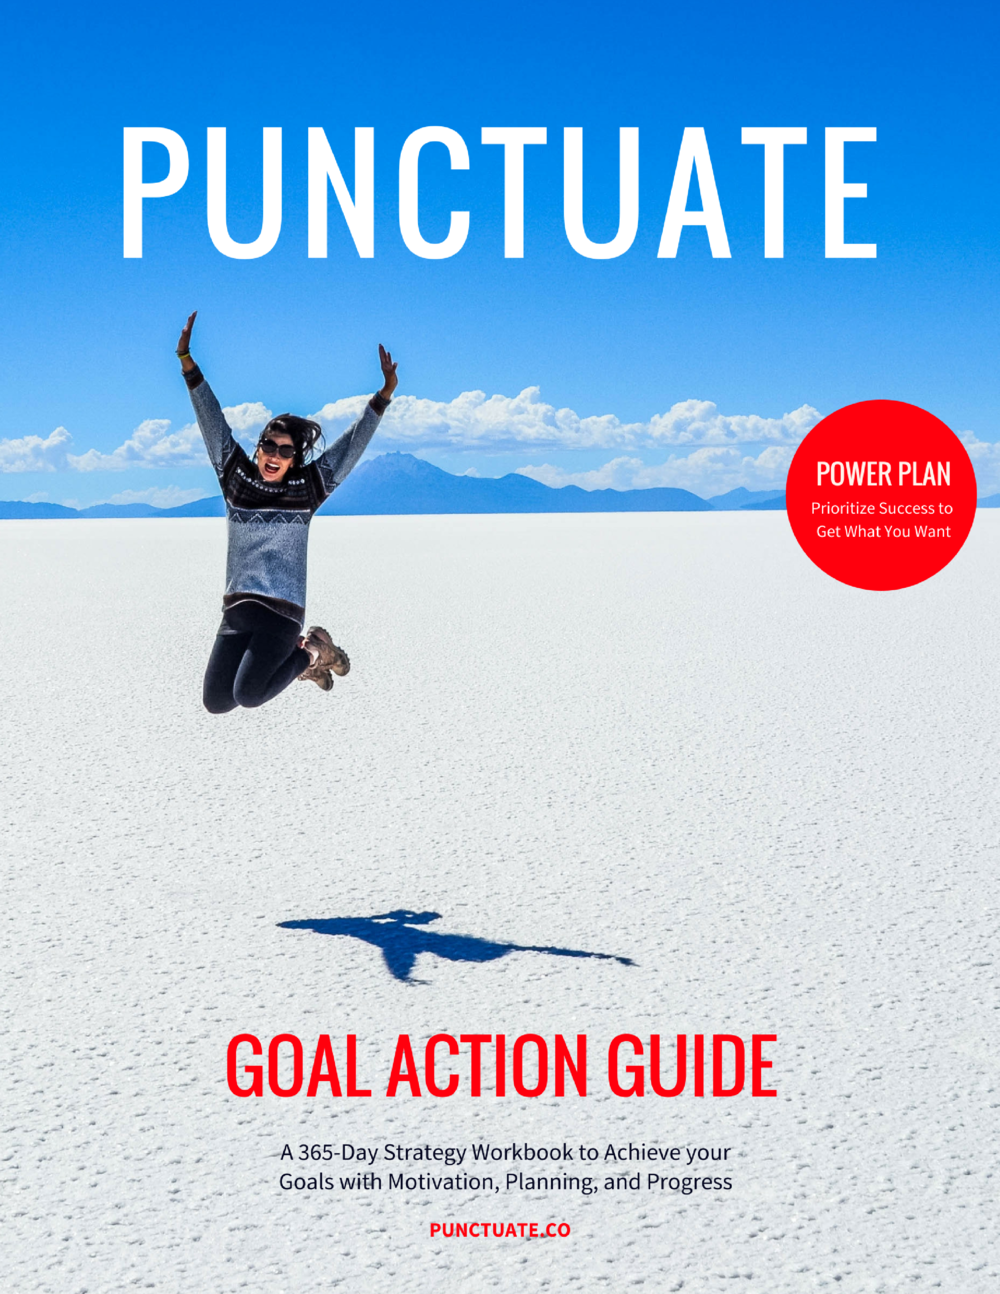 goal-action-guide.png